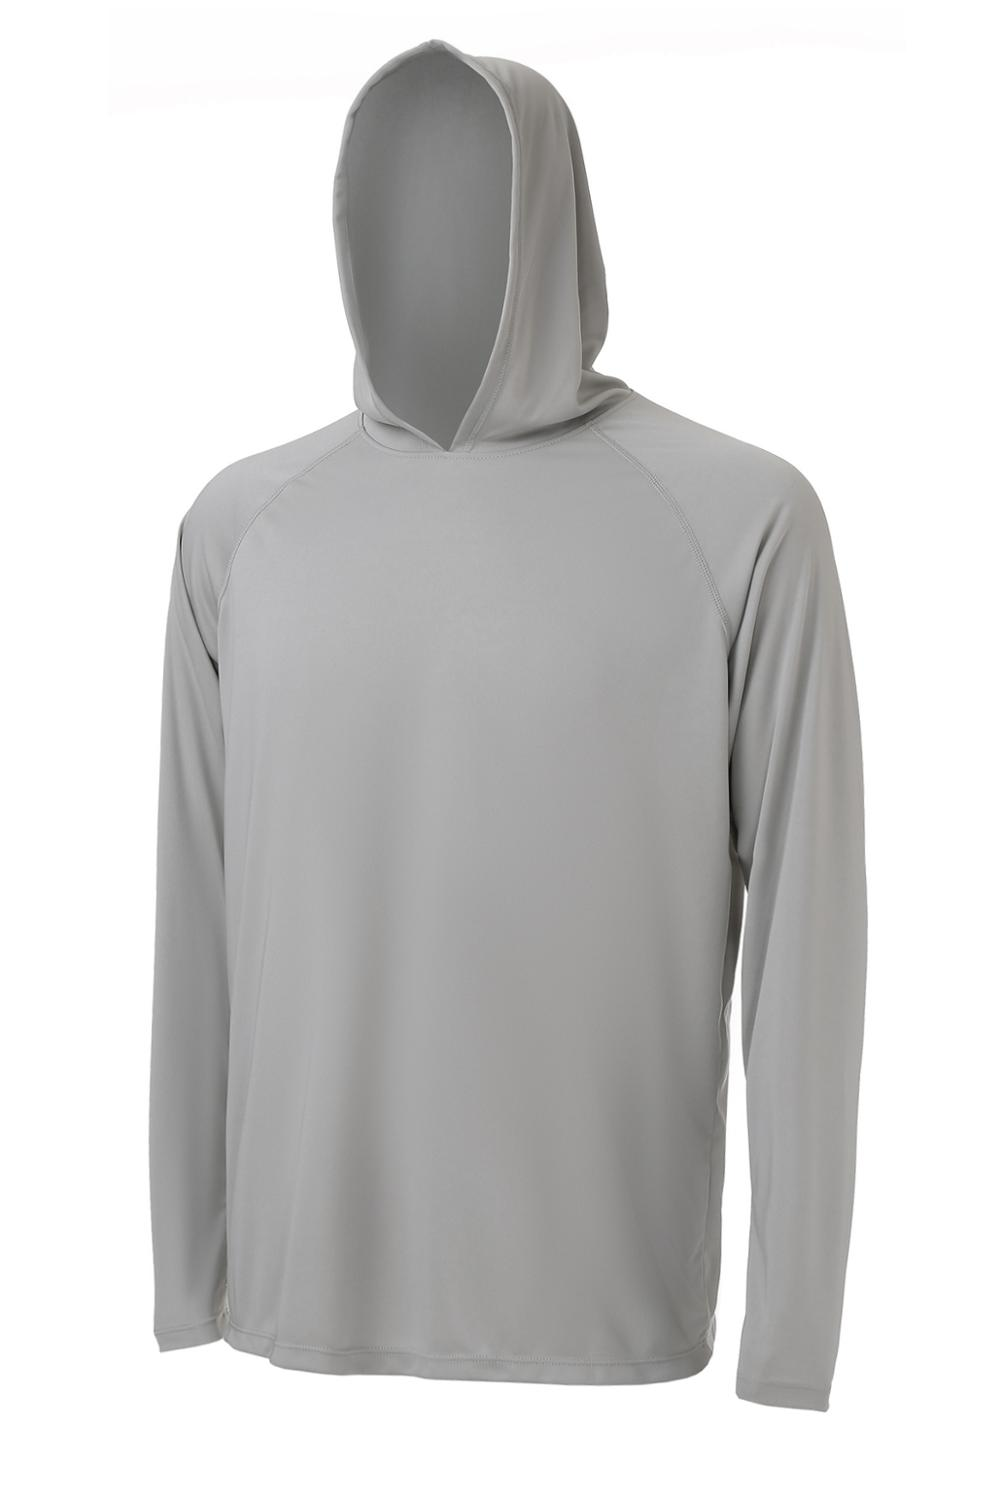 Men's Long Sleeve UPF 50+ Sun Protection Hoodie Dry Fit Sports Hooded T Shirts